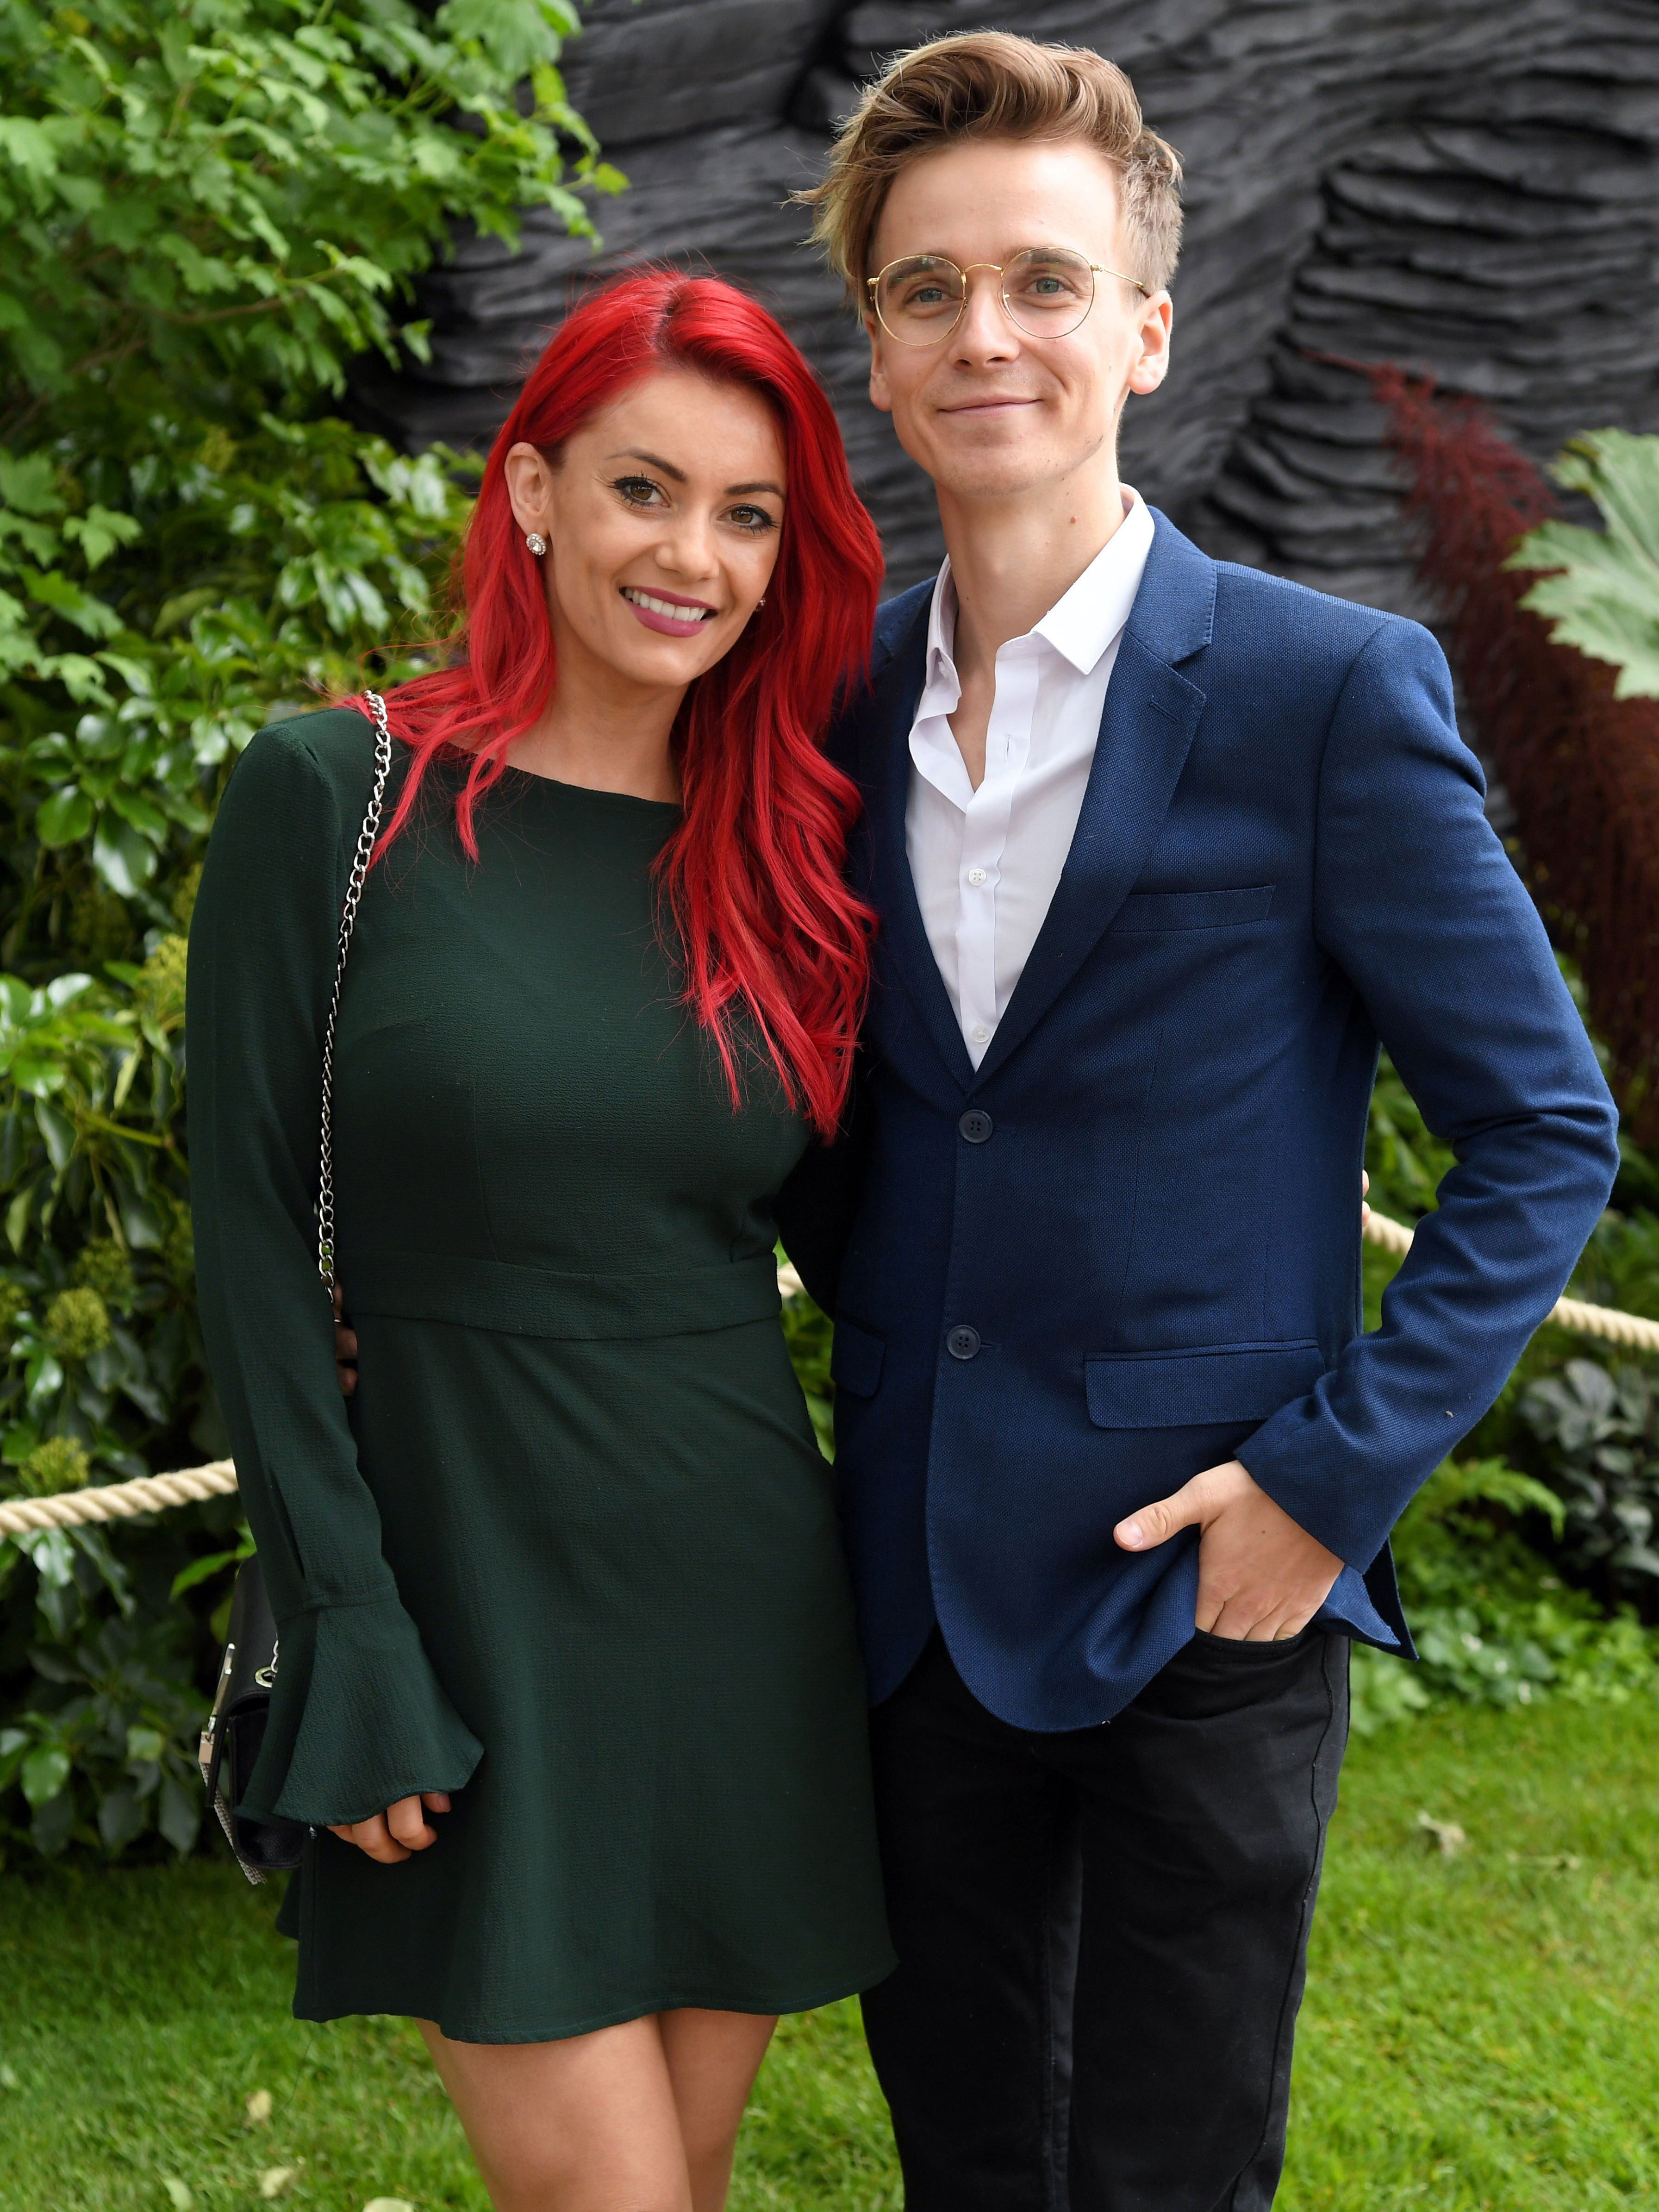 Joe Sugg reveals Dianne Buswell is 'not OK' after being axed from Strictly